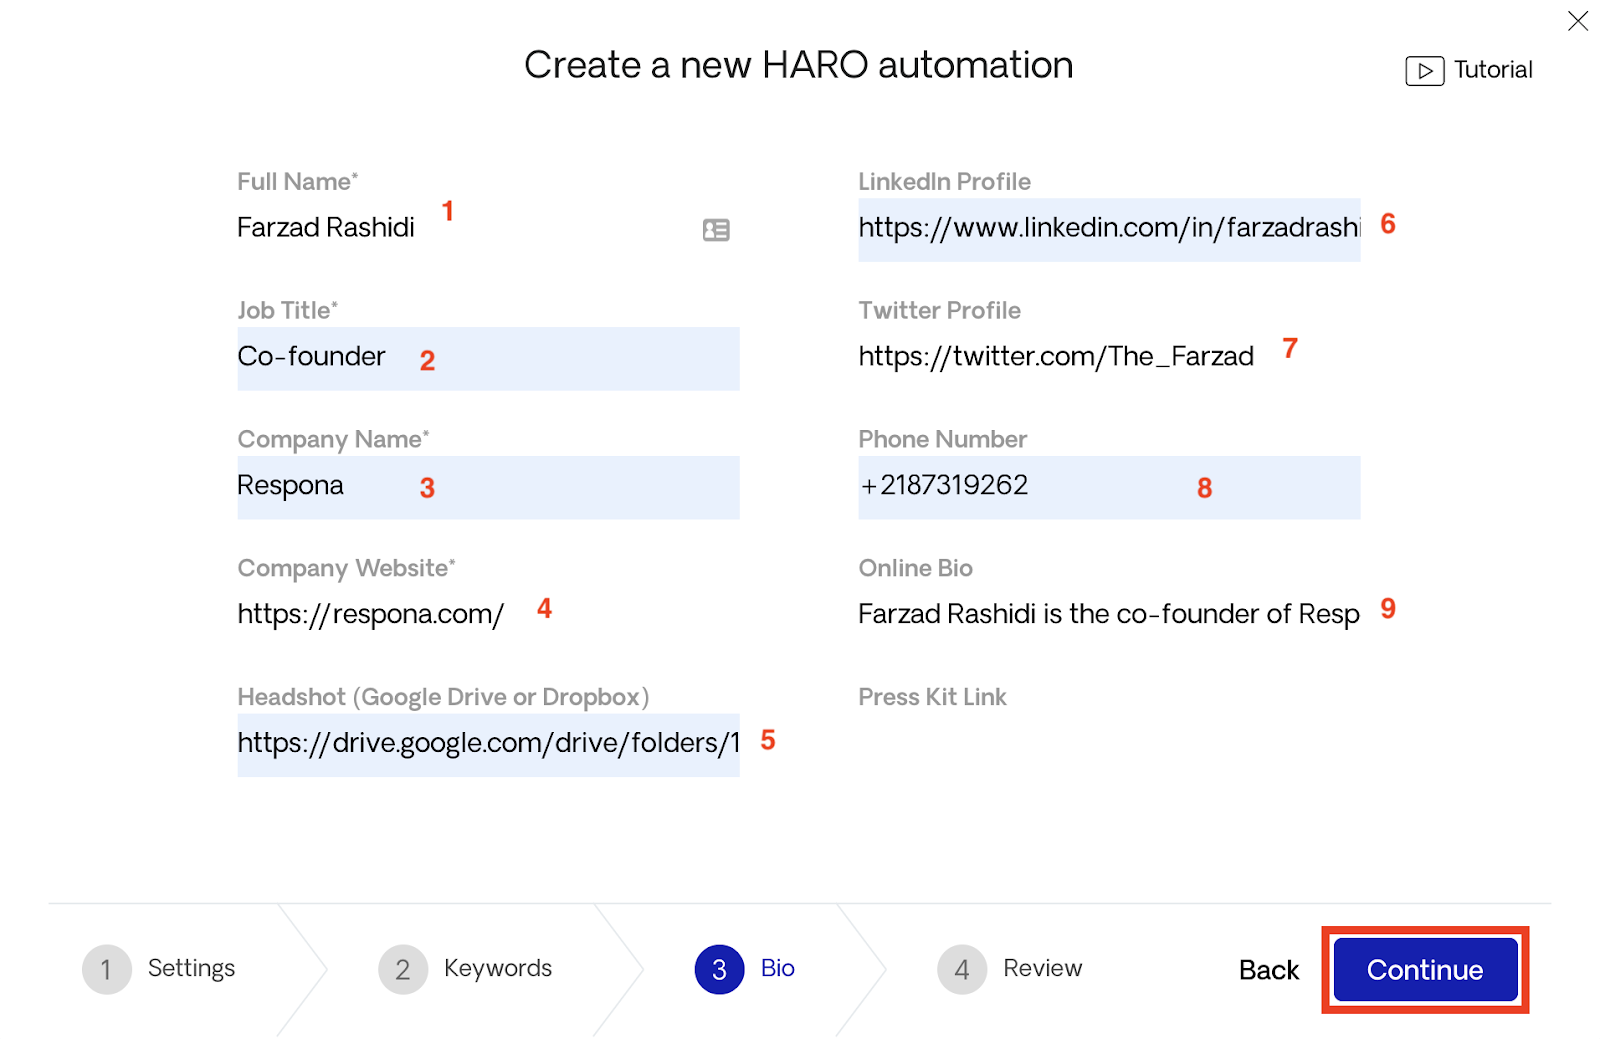 Continuing HARO automation 3